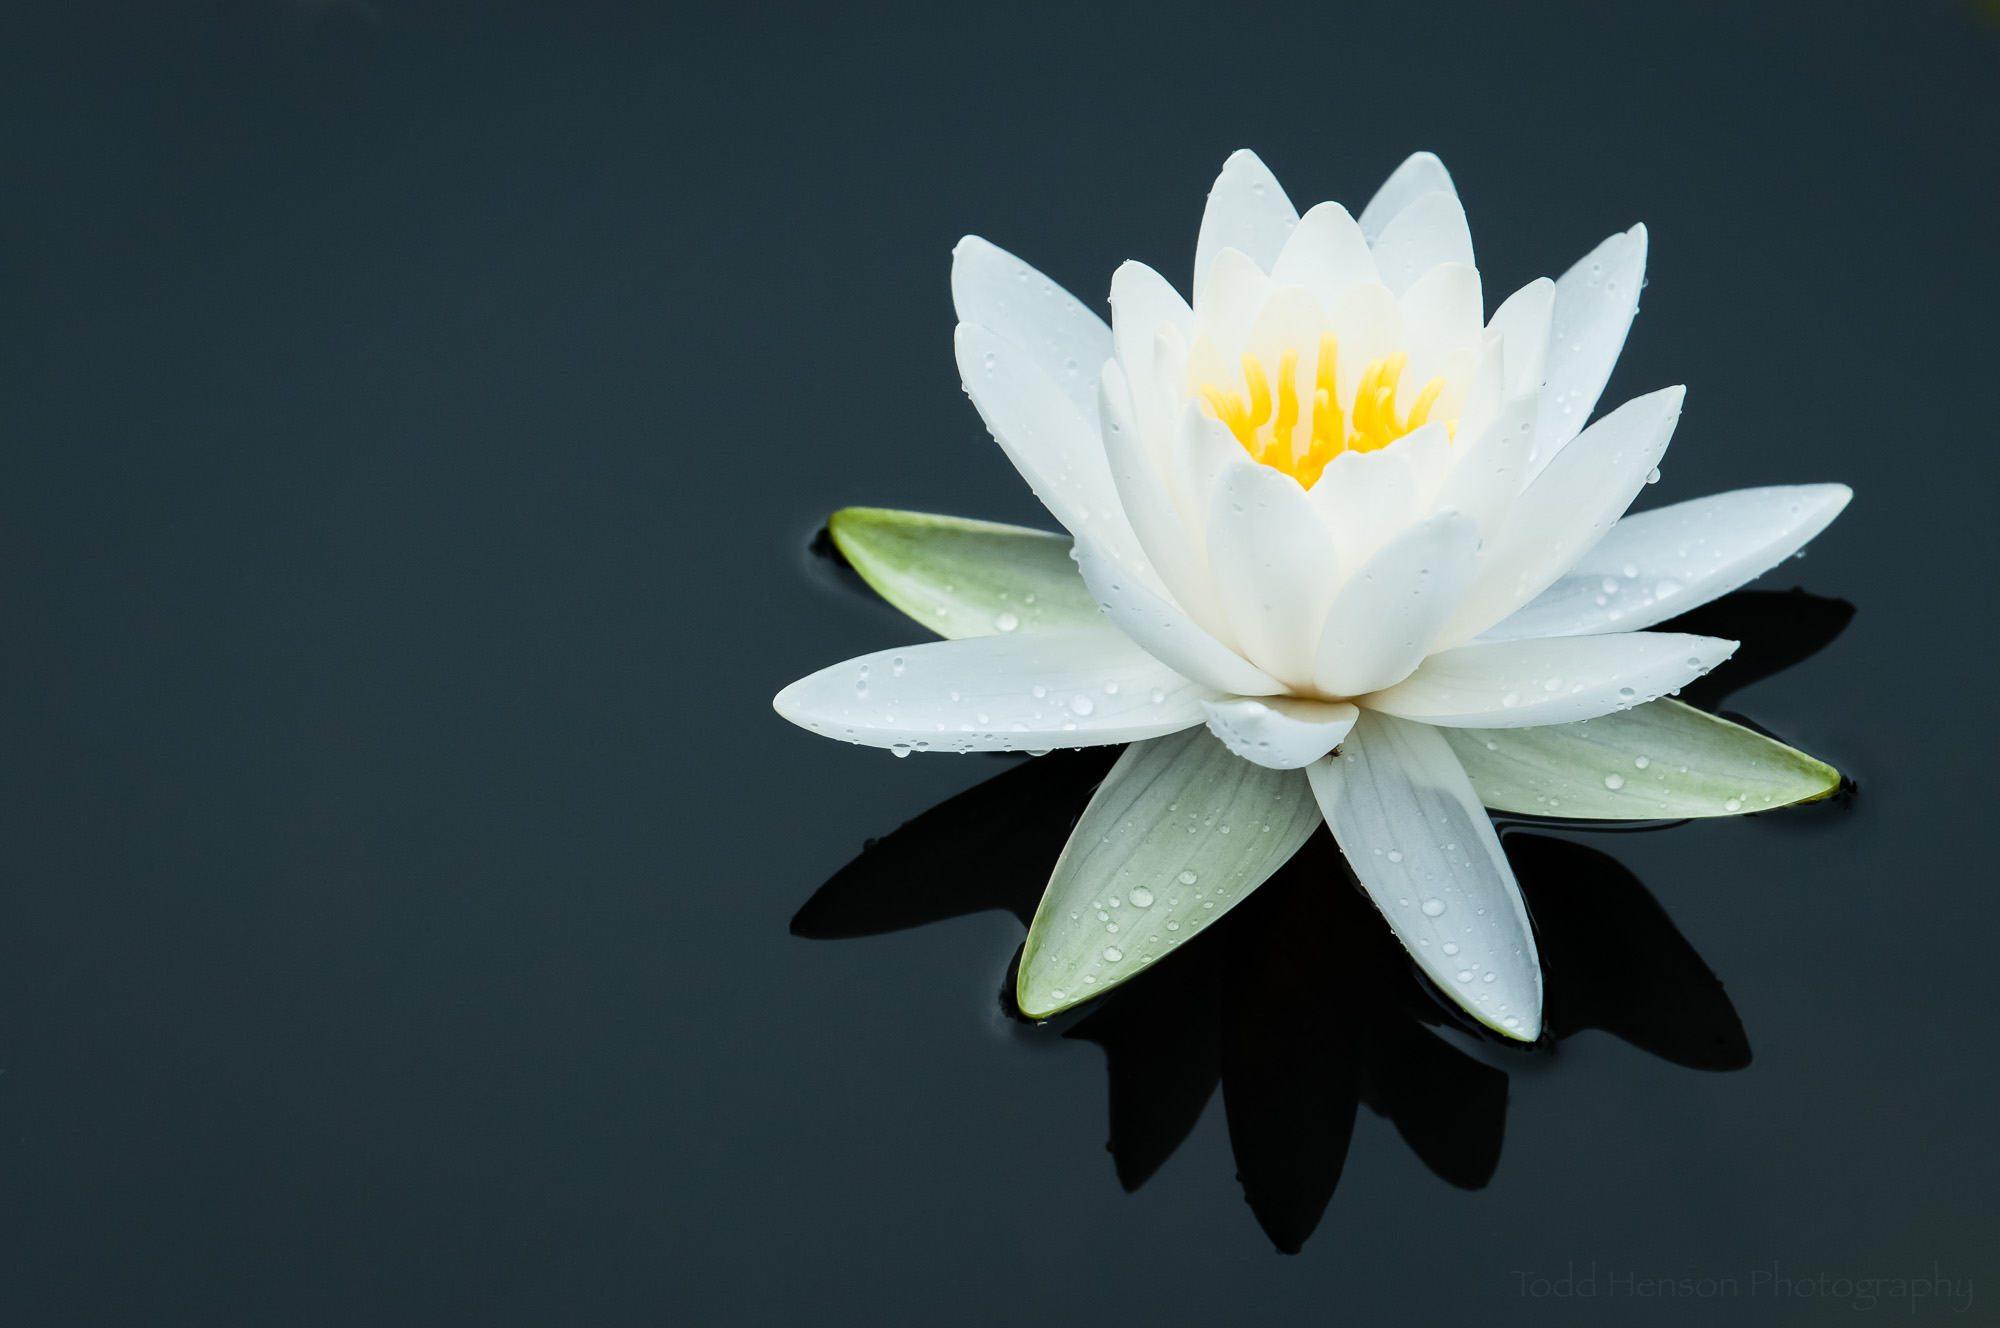 White Water Lily - the final image